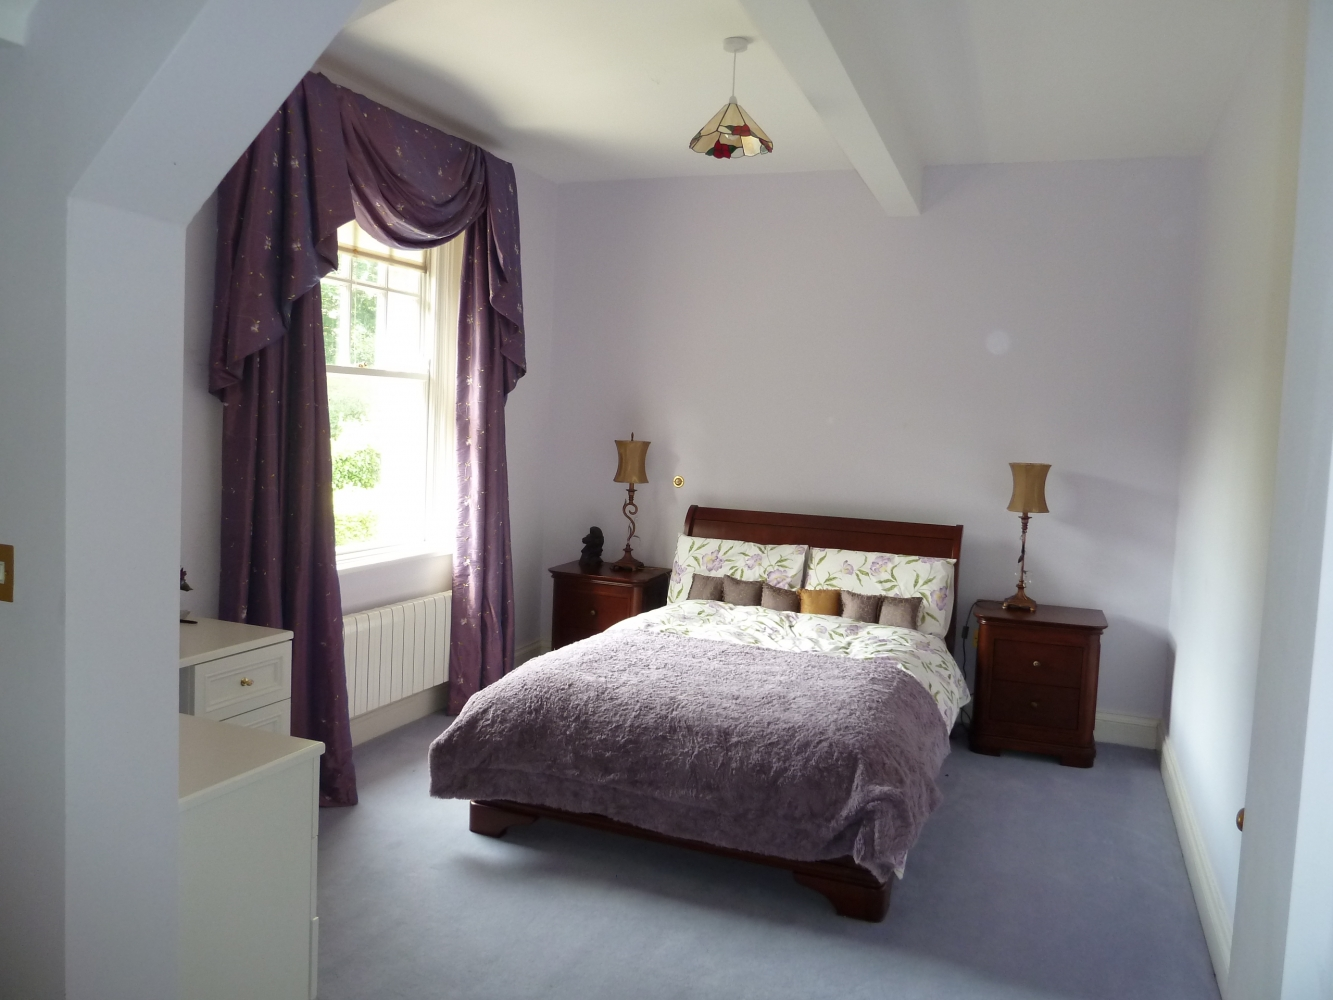 Top Award Winning Architect historic home Design Dublin Bedroom renovation